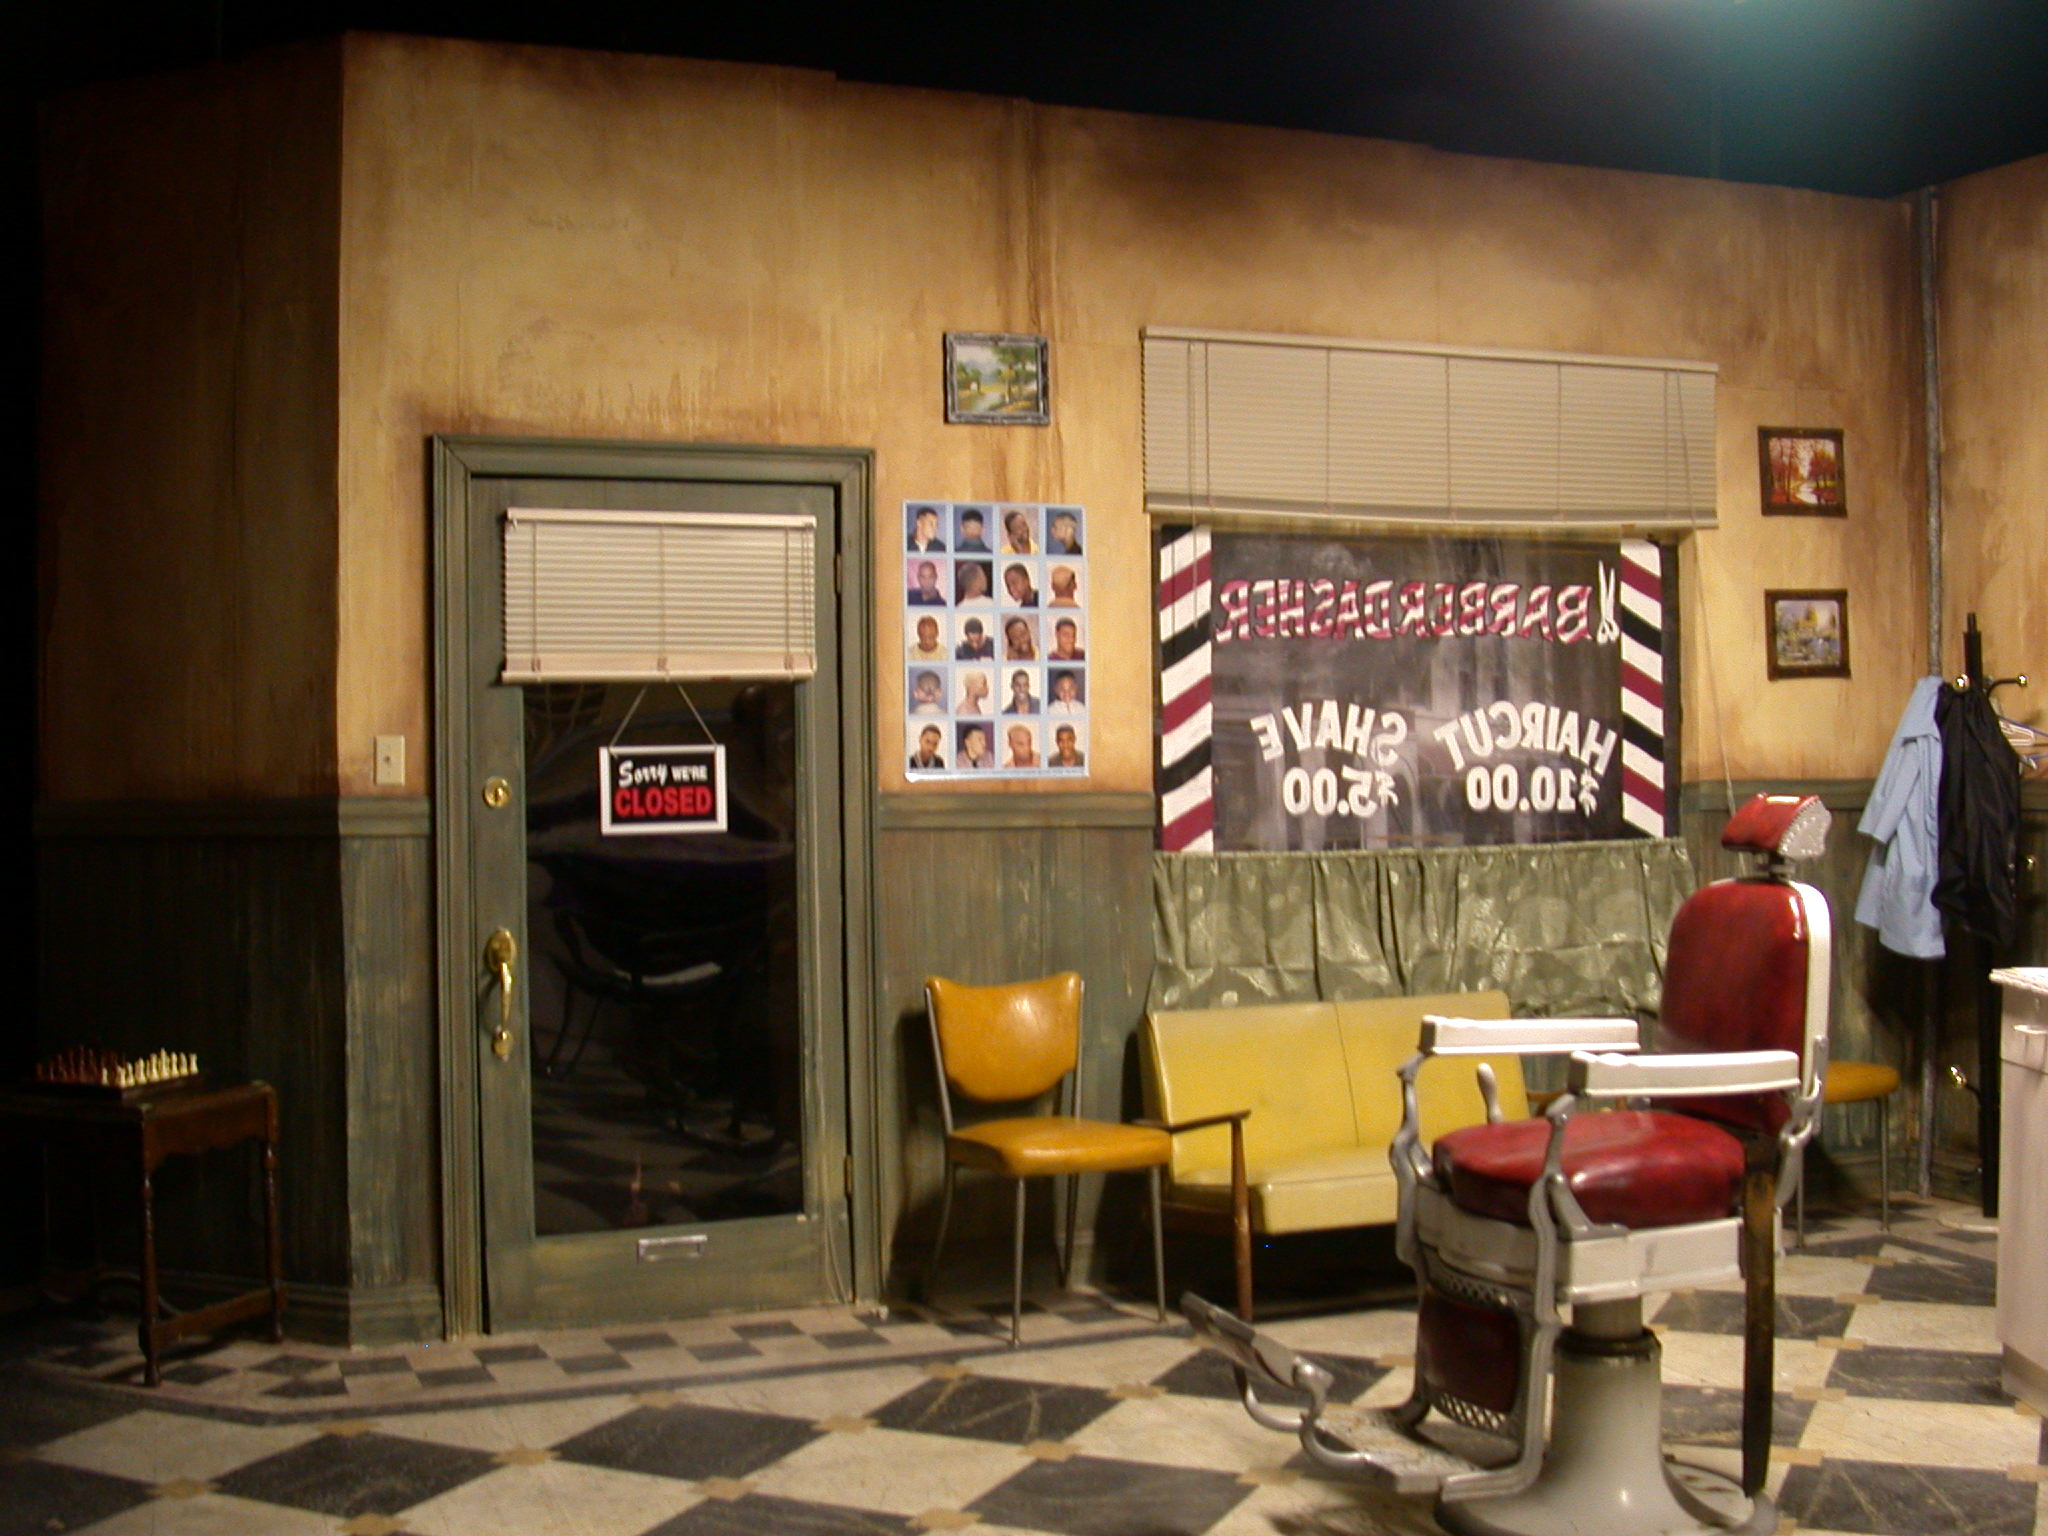 Set design by patrice andrew davidson at coroflot com